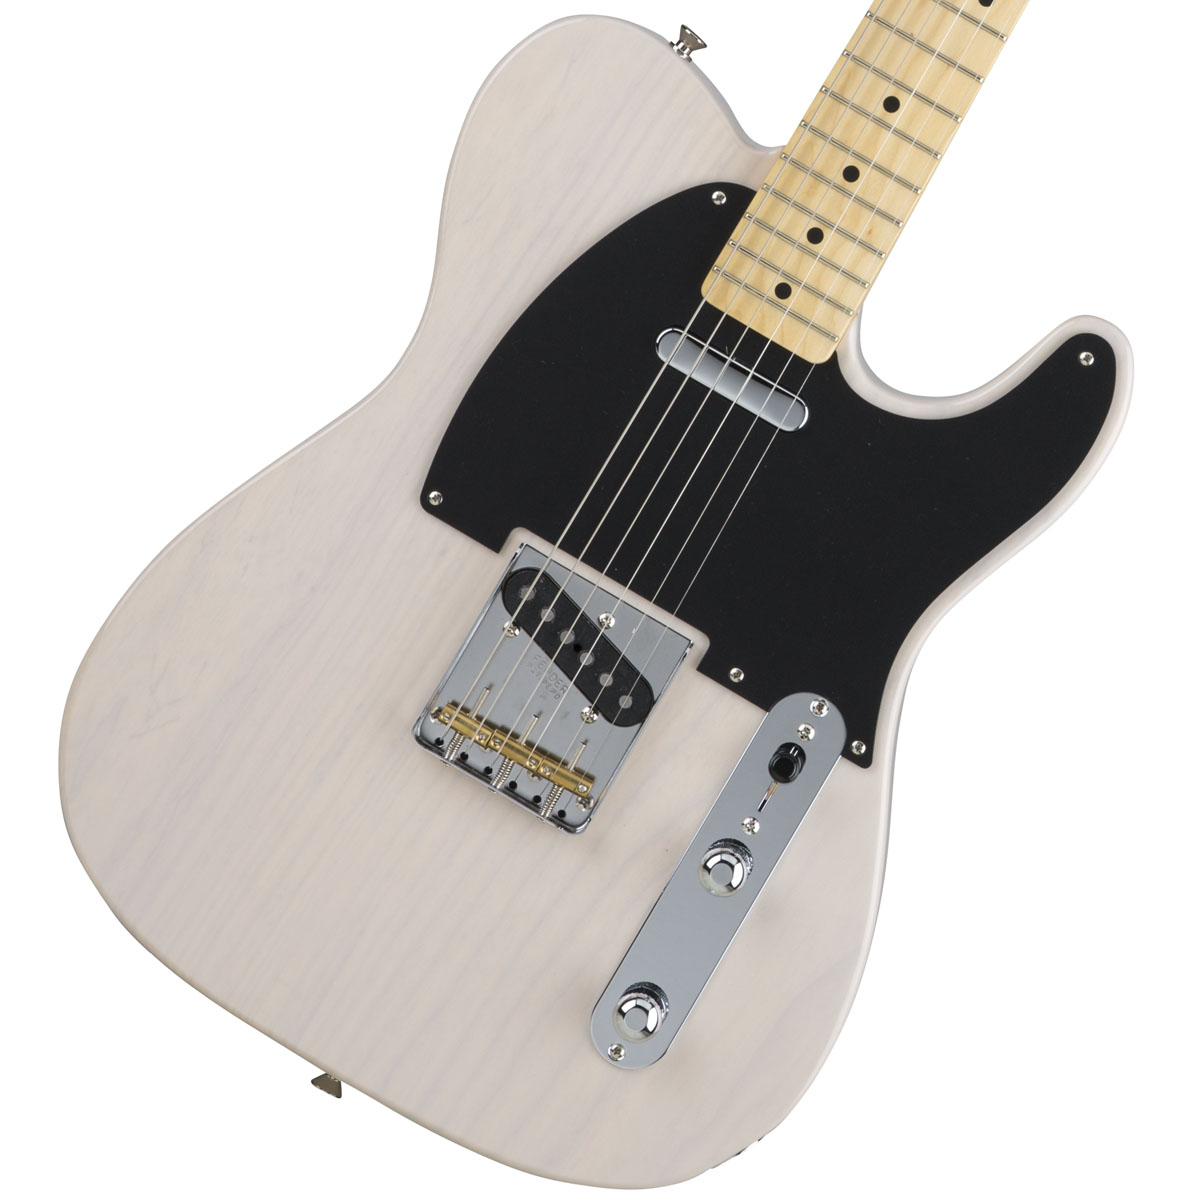 Fender / Made in Japan Hybrid 50s Telecaster Ash US Blonde《カスタムショップのお手入れ用品を進呈/+671038200》